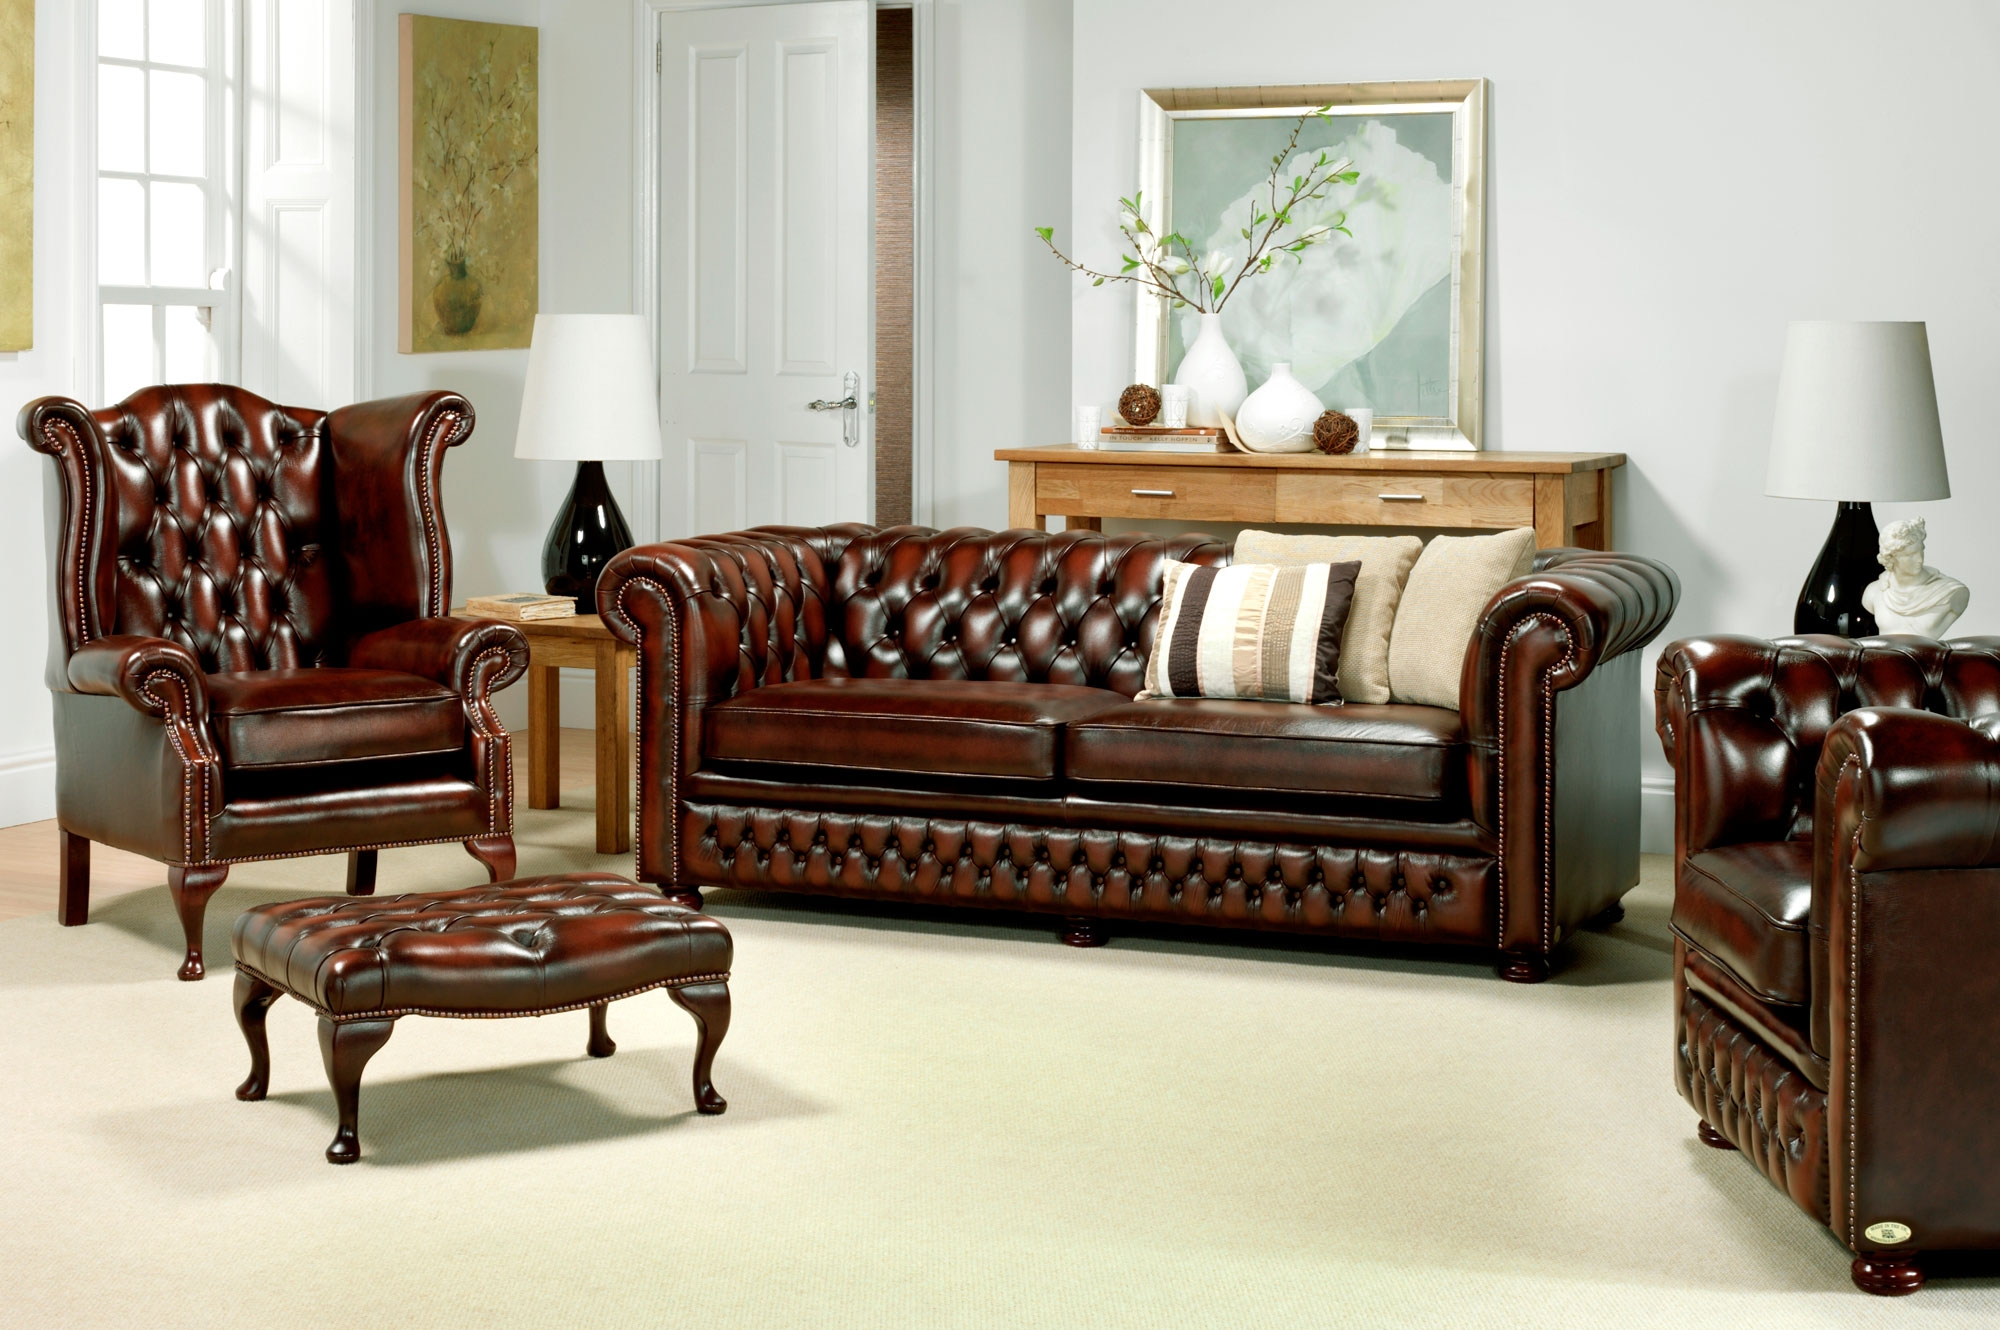 59 Sofas And Chairs Sofa Chair Chesterfield Sofa Chair Avworld For Chesterfield Sofa And Chair (Image 1 of 15)